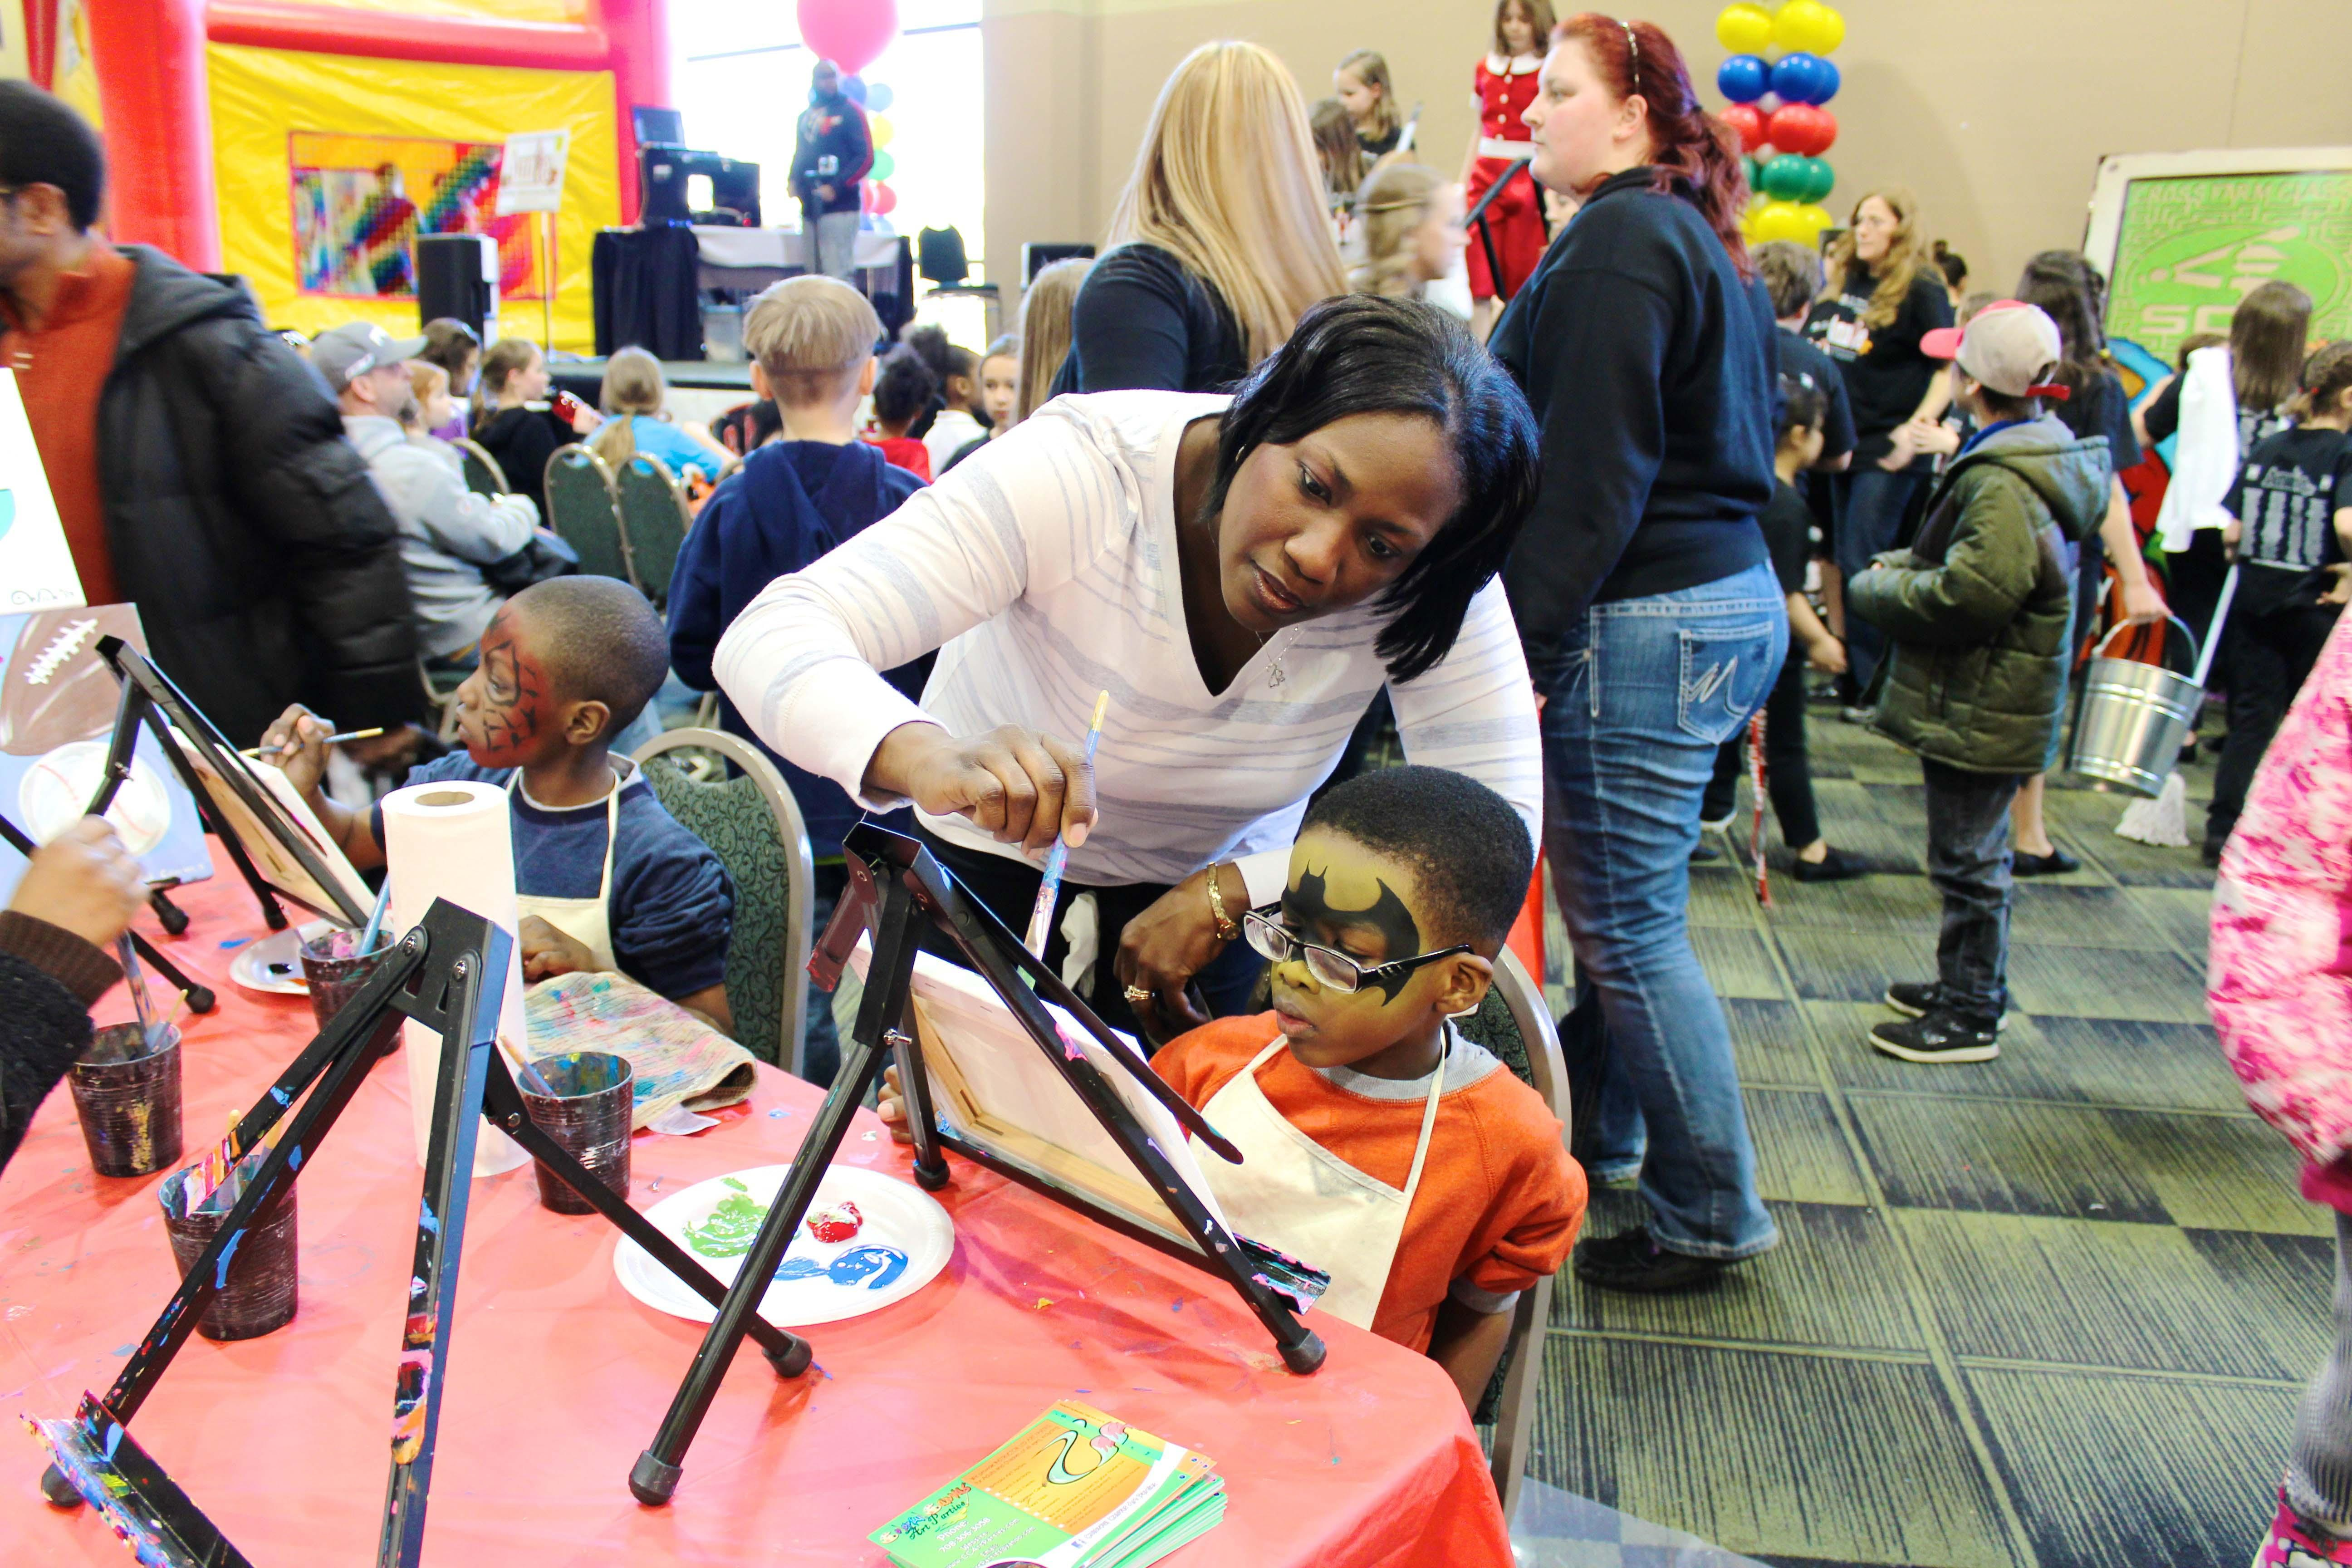 Children have the opportunity to paint their faces, paint canvases and peruse more than 100 exhibitions at the Chicagoland Kids Expo. (Courtesy of Chicagoland Kids Expo, 2015)